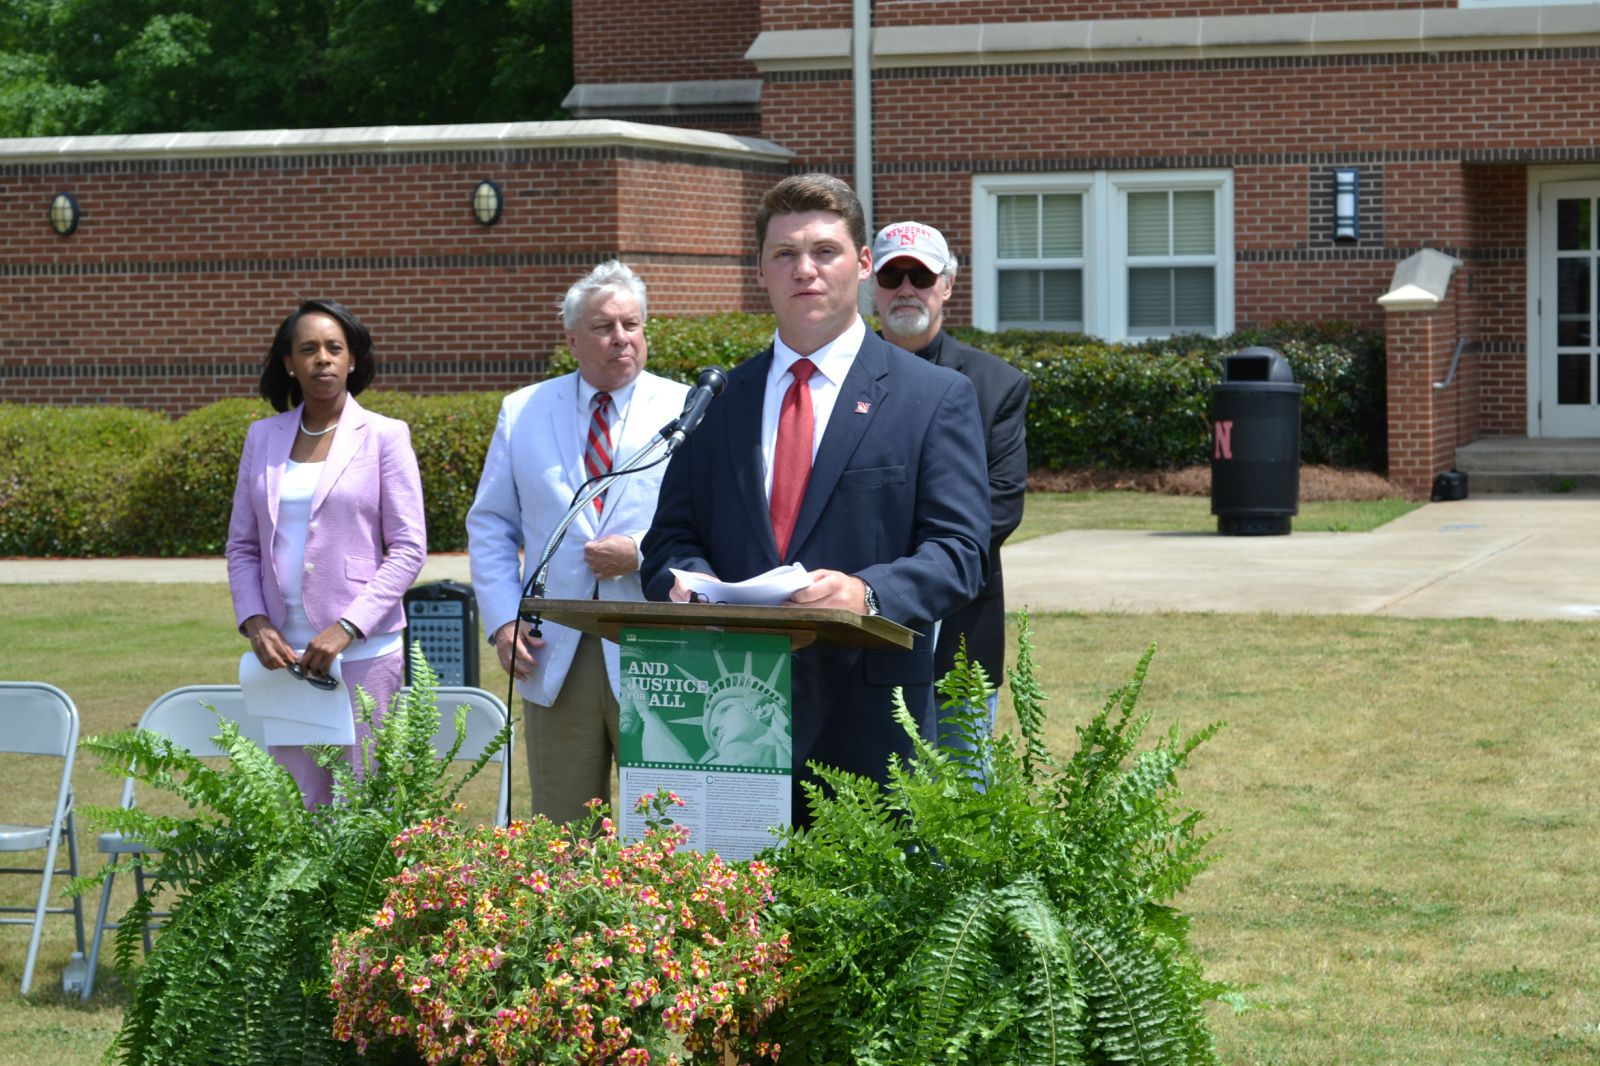 Newberry College Student Government President Benjamin Herring addresses a crowd at the groundbreaking of a new residence hall at Newberry College. (Photo/Provided)